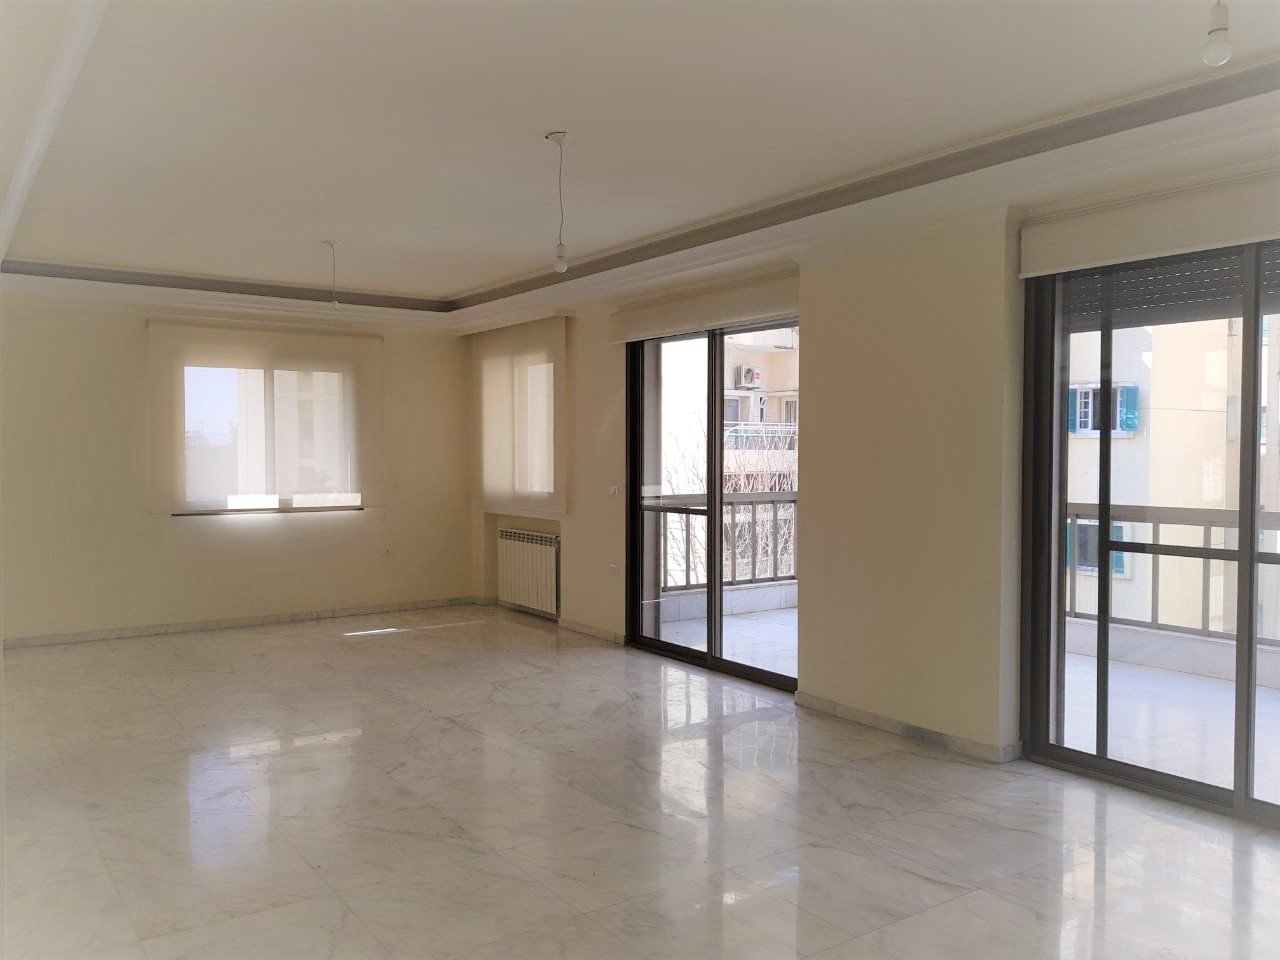 Apartment for Rent, Ras el Nabah, 240 sqm,  18,000 USD